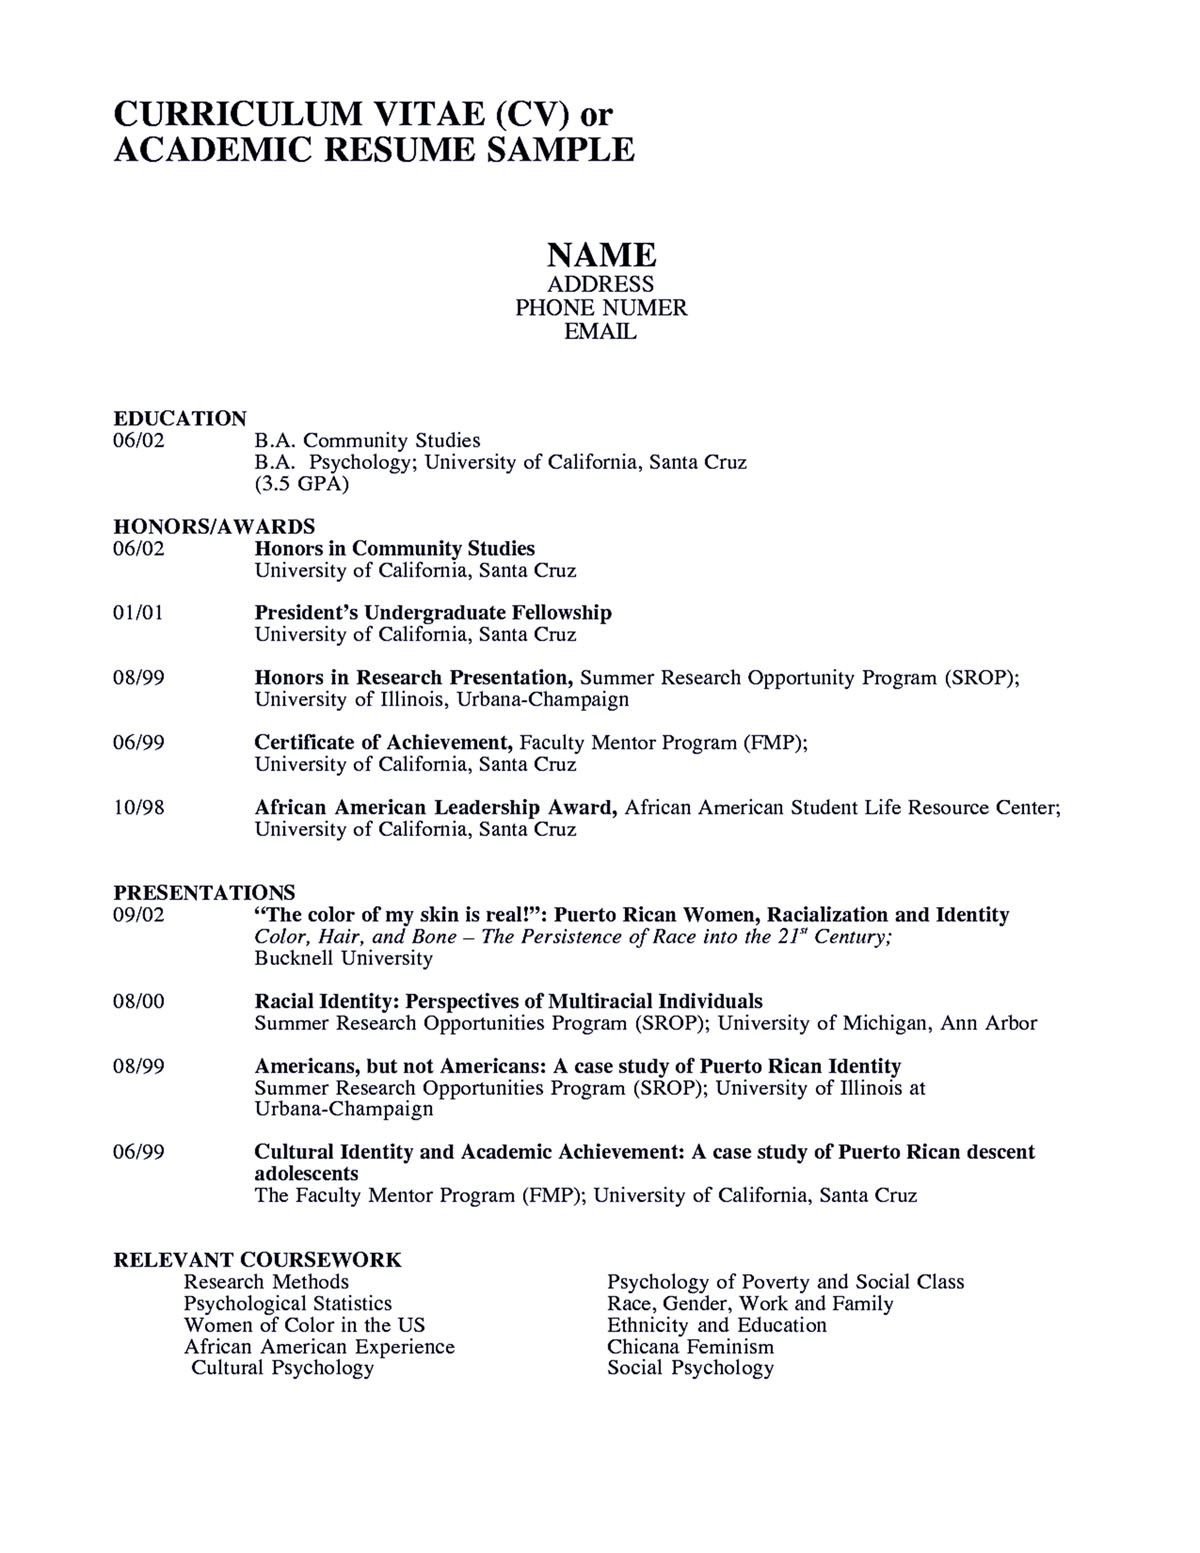 Resumes For Students Academic Resume Sample Shows You How To Make Academic Resume